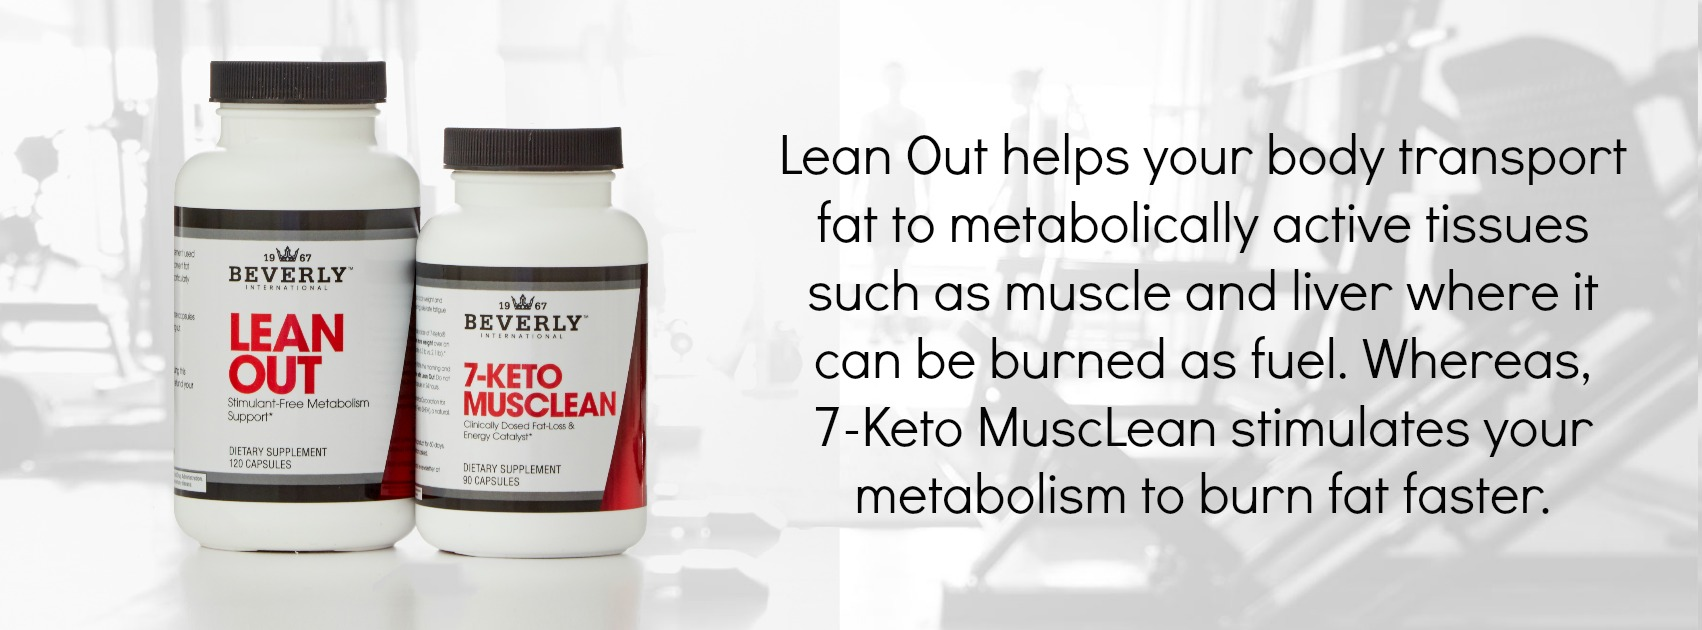 lean-out-7-keto-banner.jpg